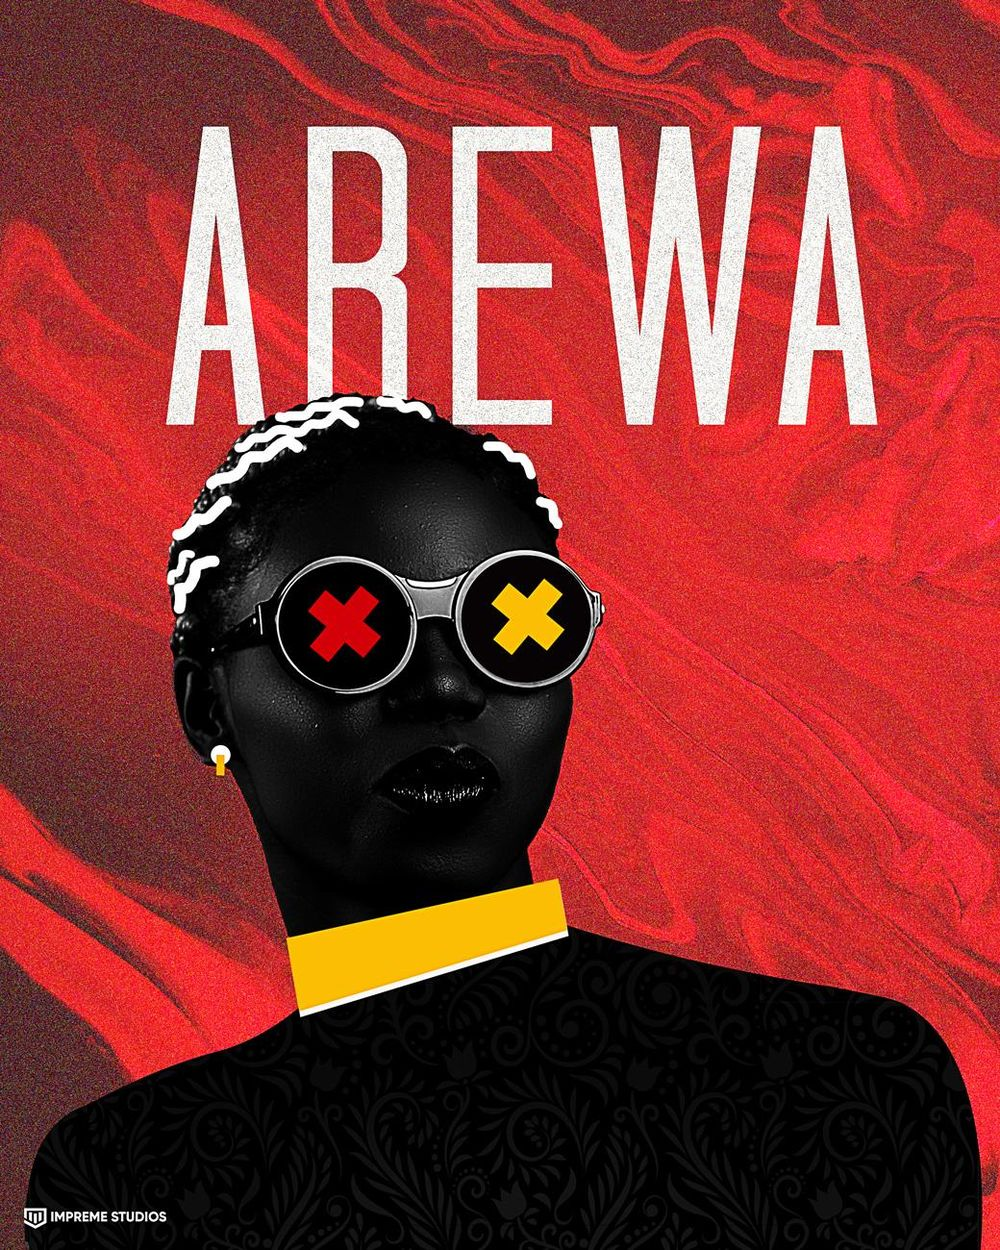 AREWA - local beauty - image 1 - student project